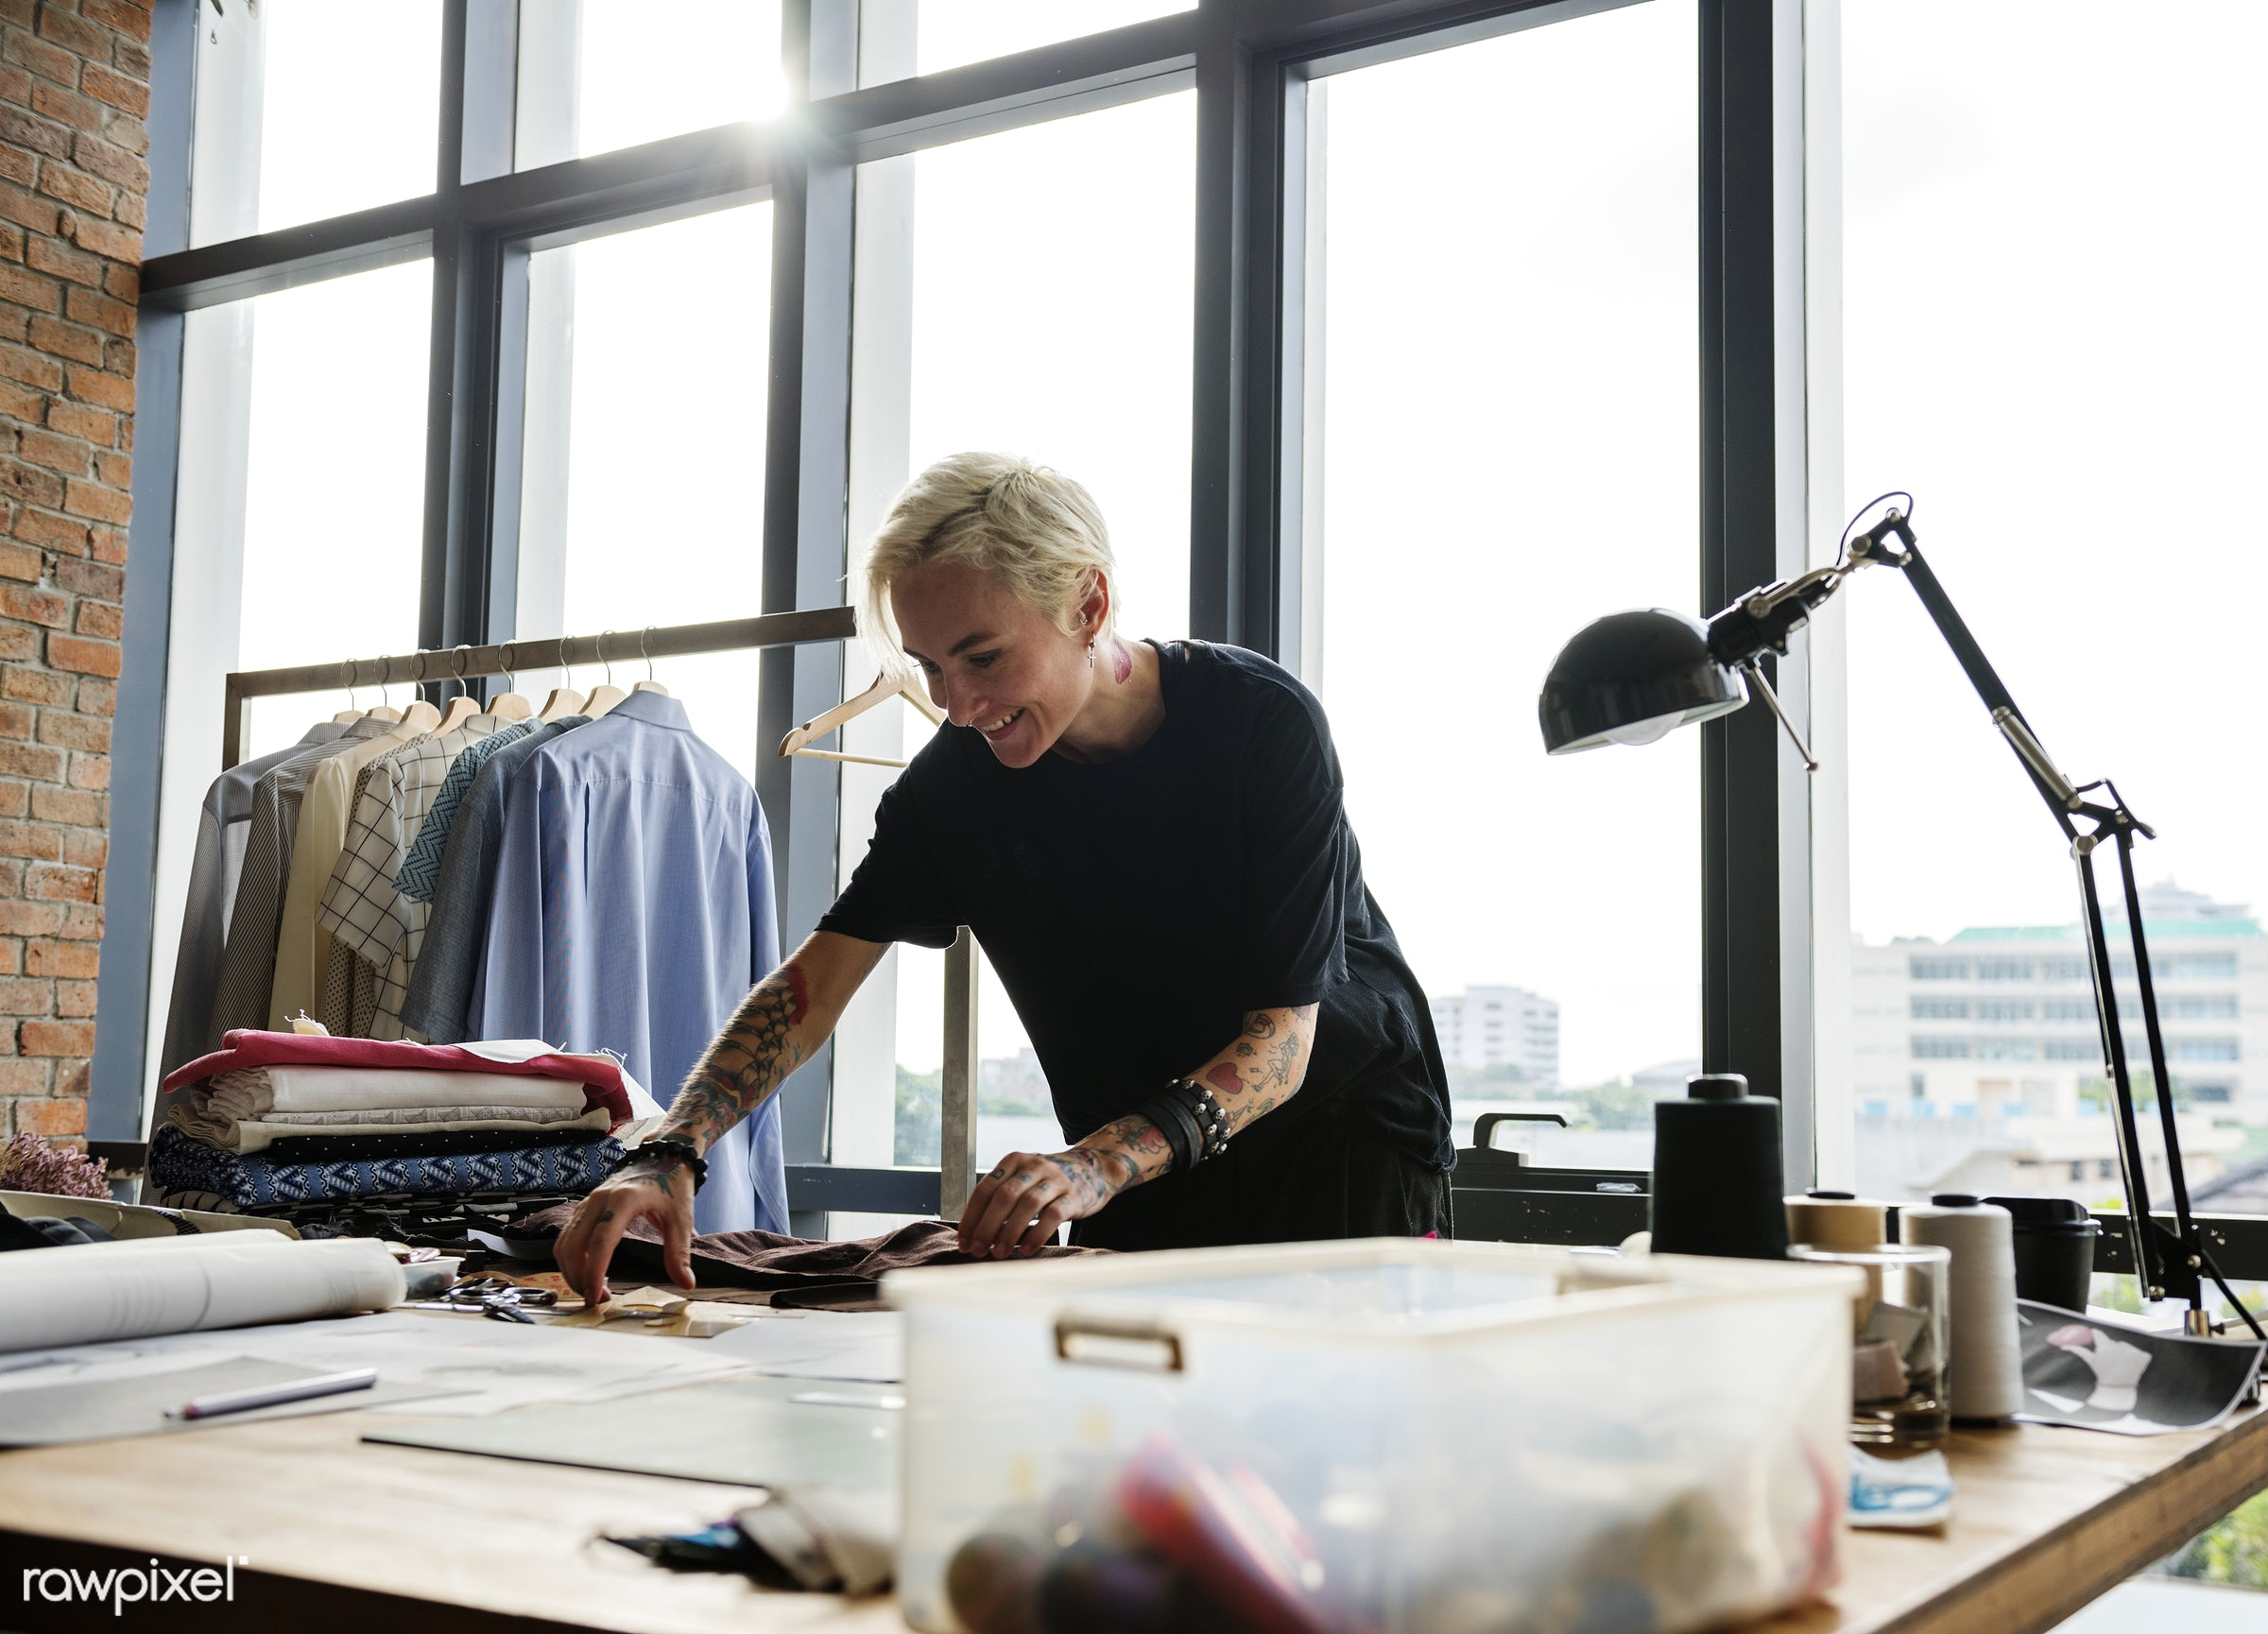 Fashion designer working in a studio - choose, choosing, choosing materials, cloth, clothes, clothing, clothing materials,...